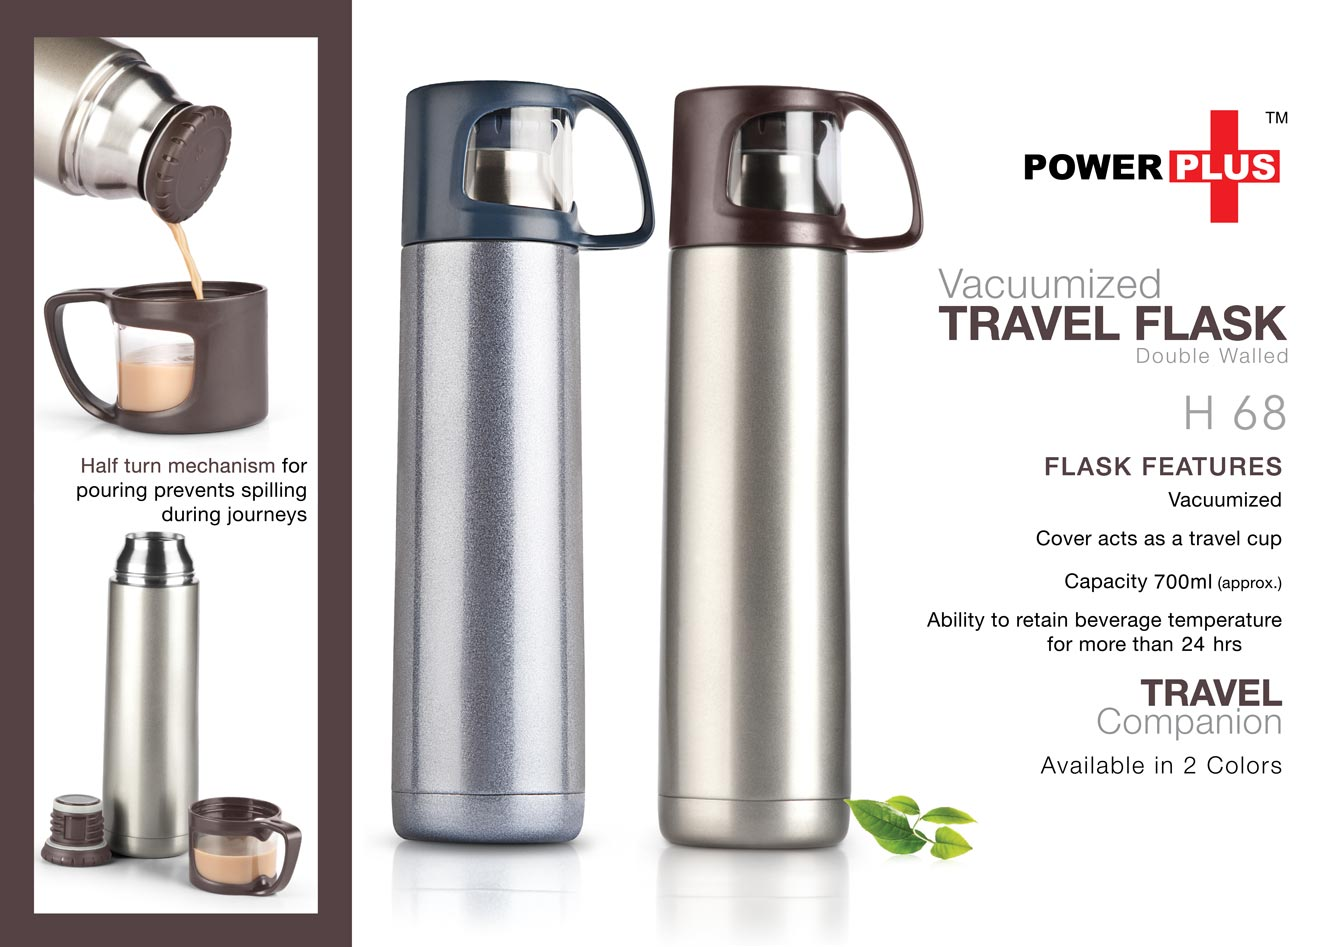 H68 - Power Plus Vacuumized travel flask (700 ml)